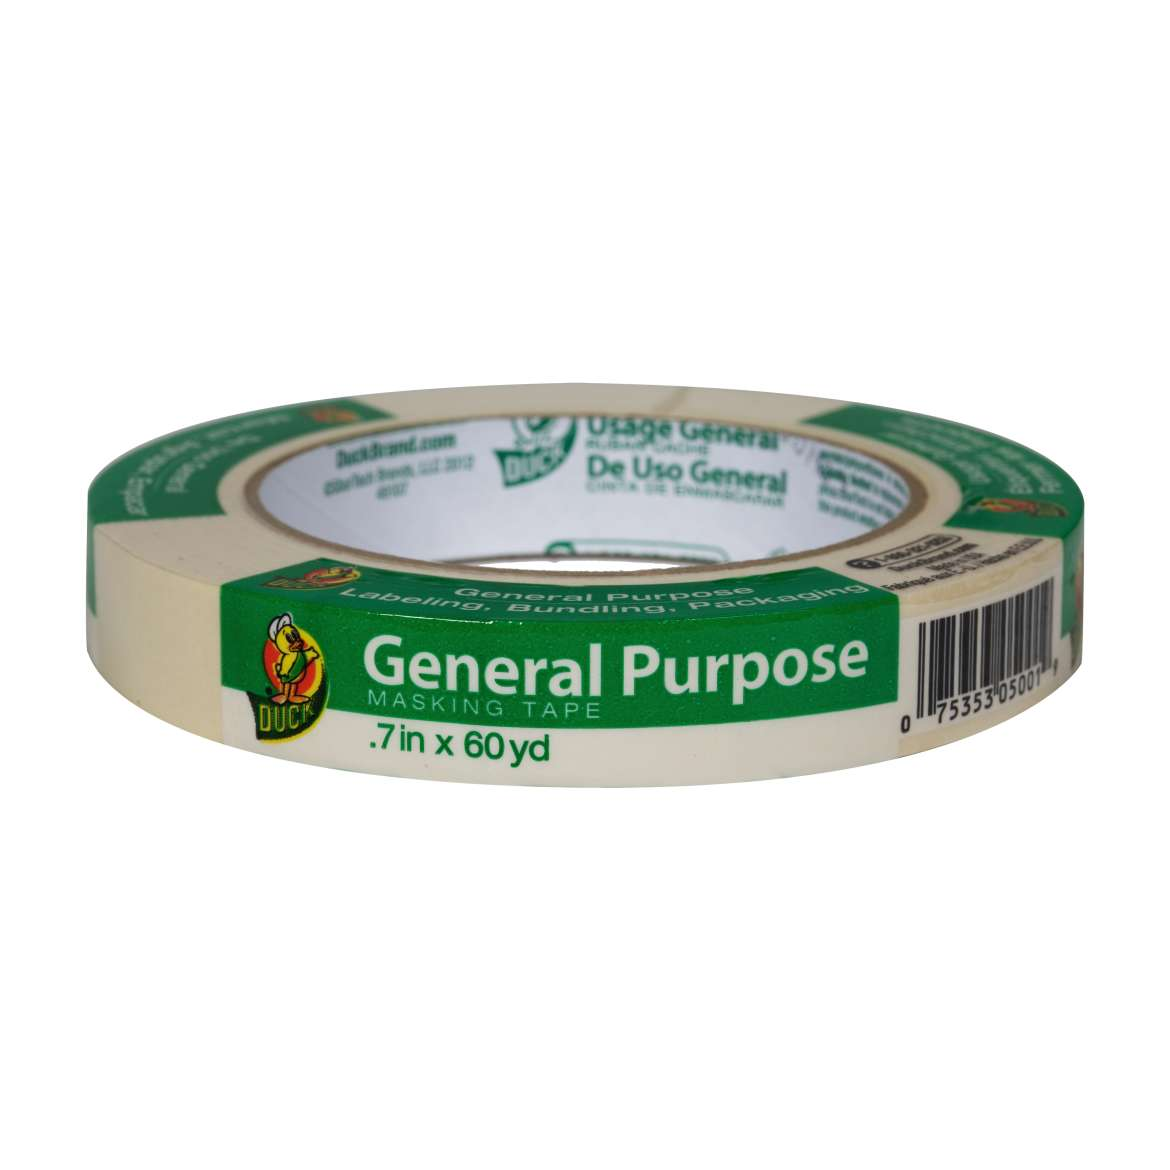 Duck® Brand General Purpose Masking Tape - Beige, .7 in. x 60 yd. Image